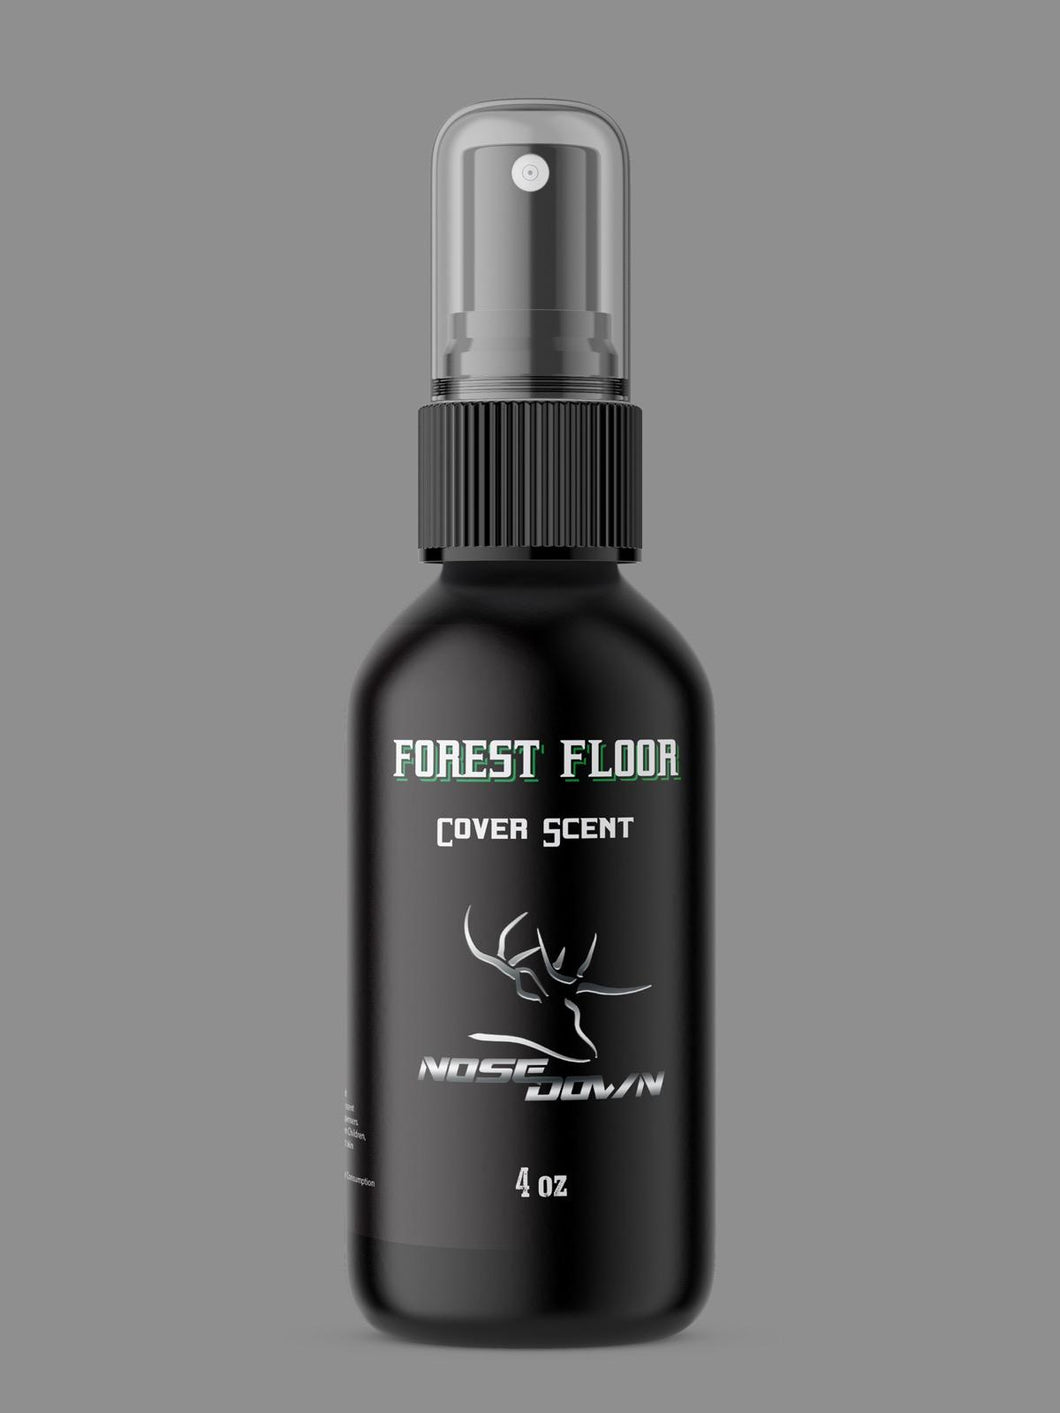 Forest Floor Cover Scent